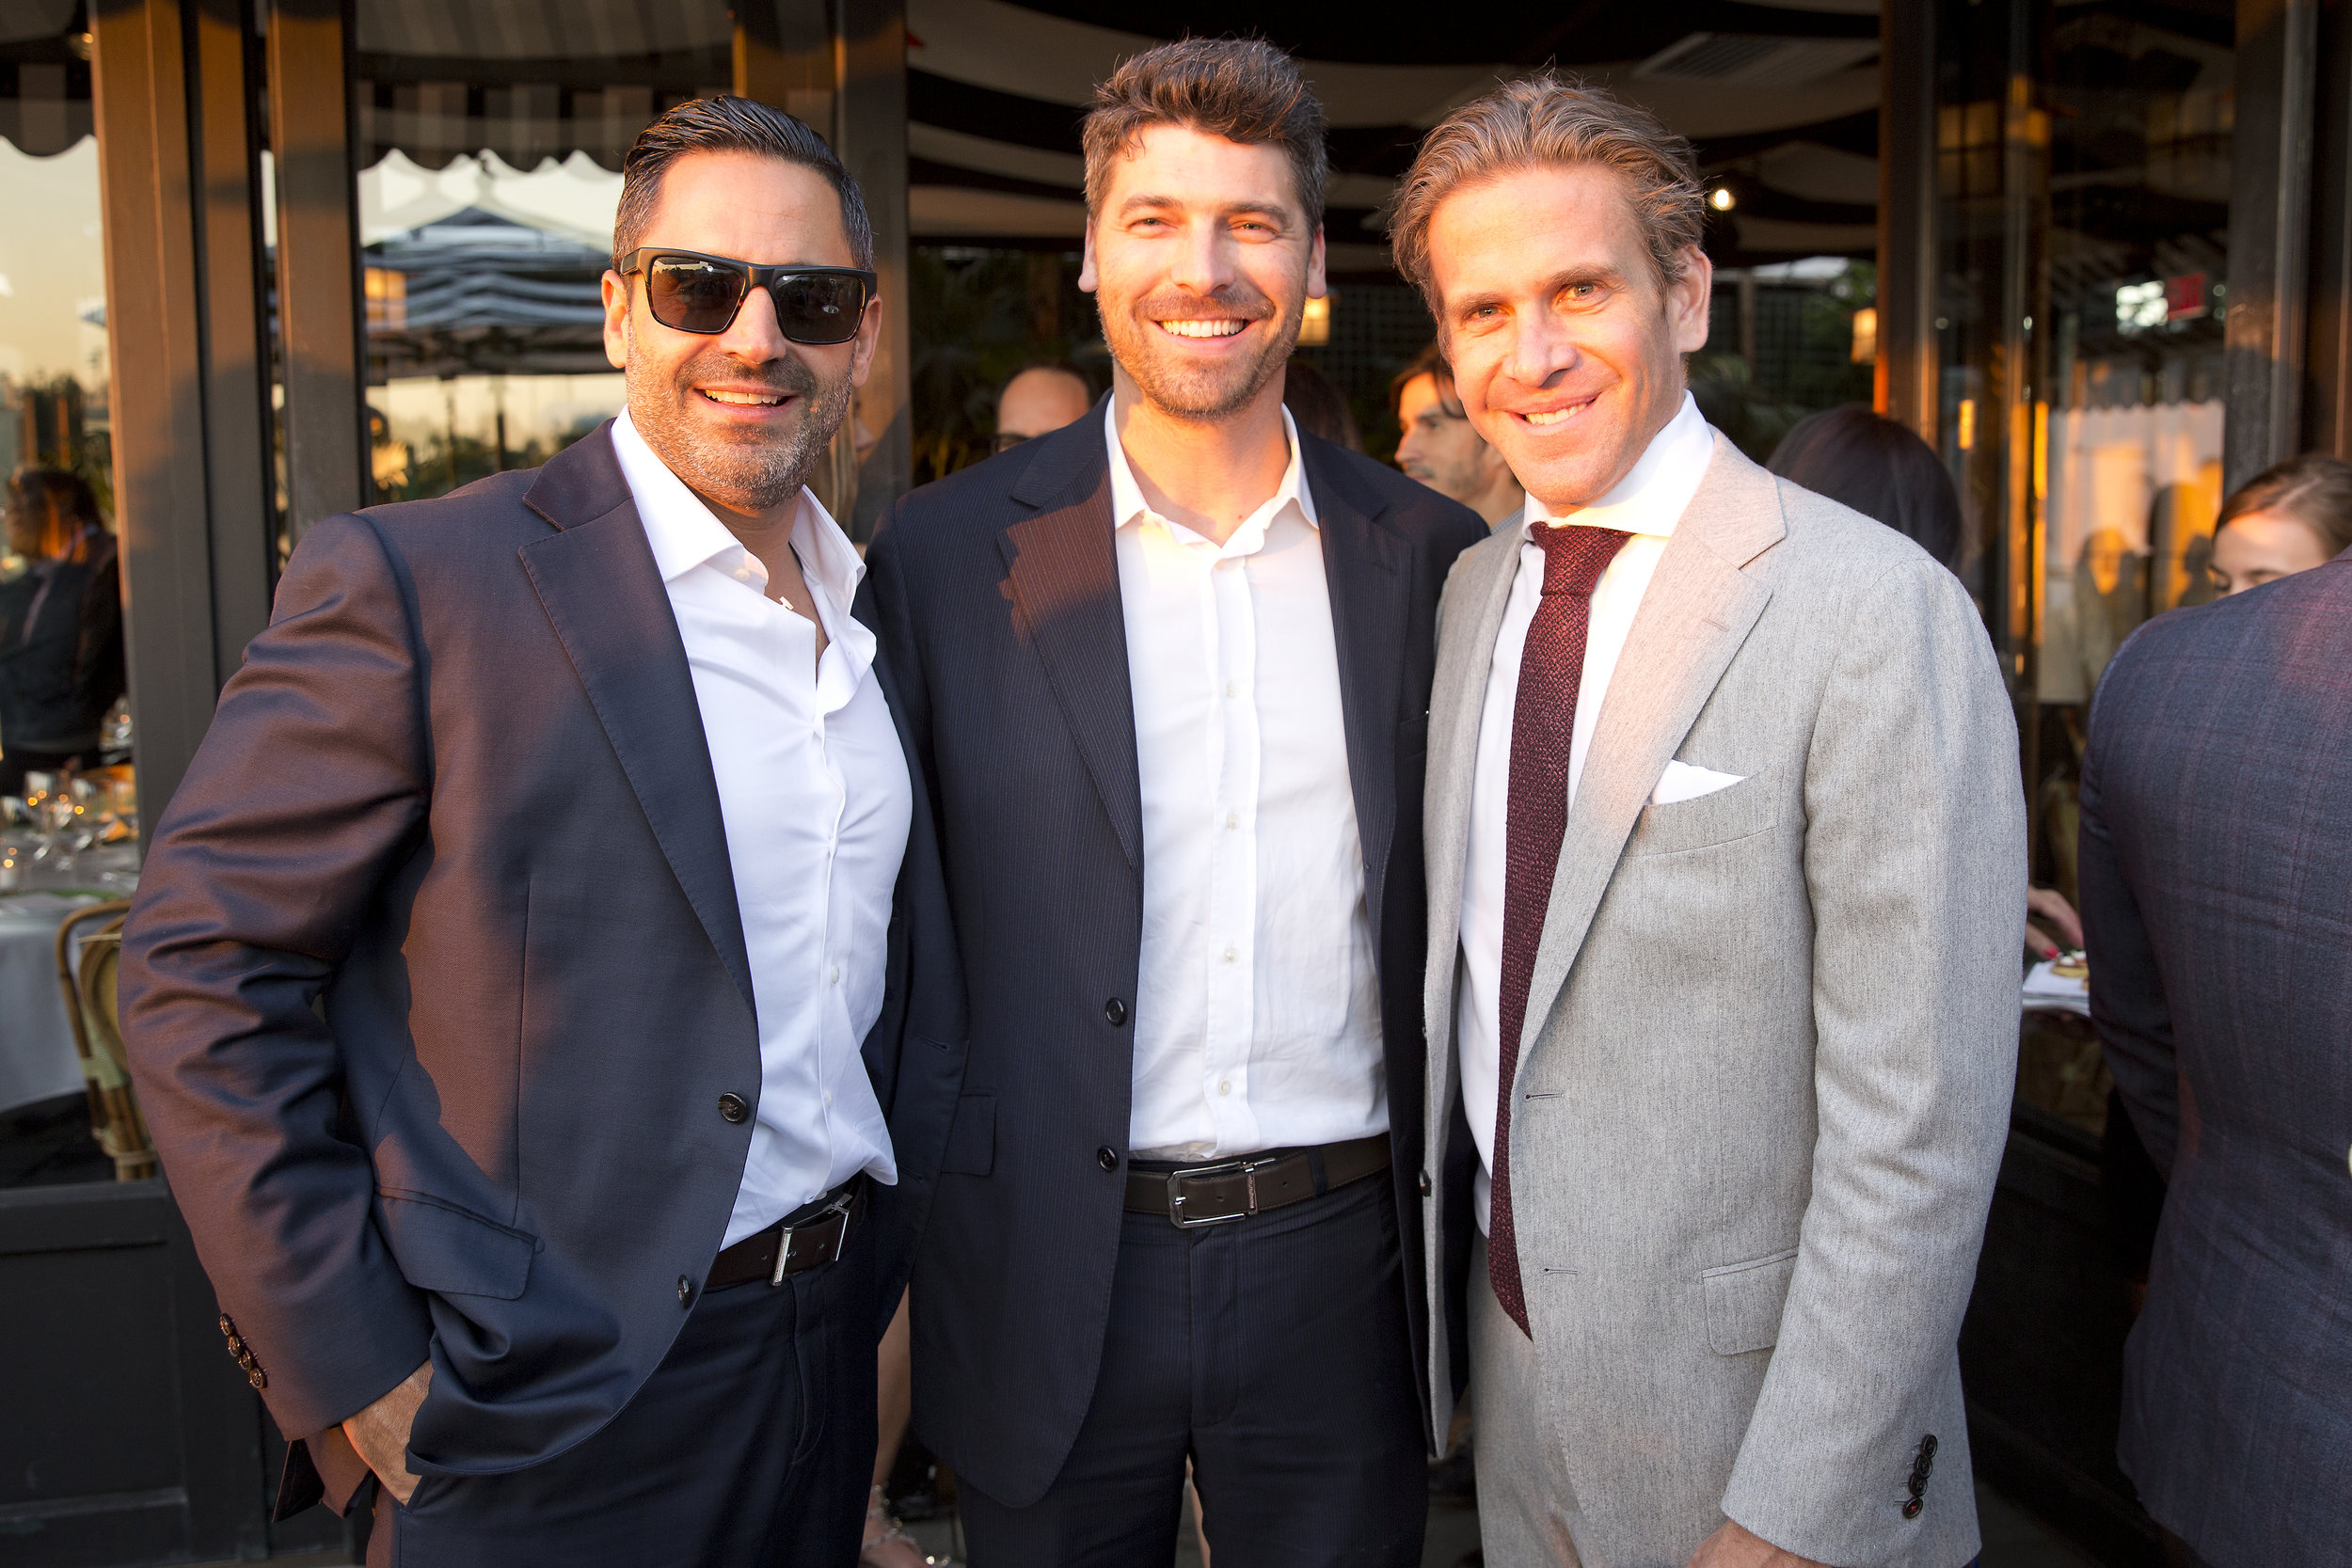 Ariel Cohen, Andrew Anderson, Cory Weiss.jpg